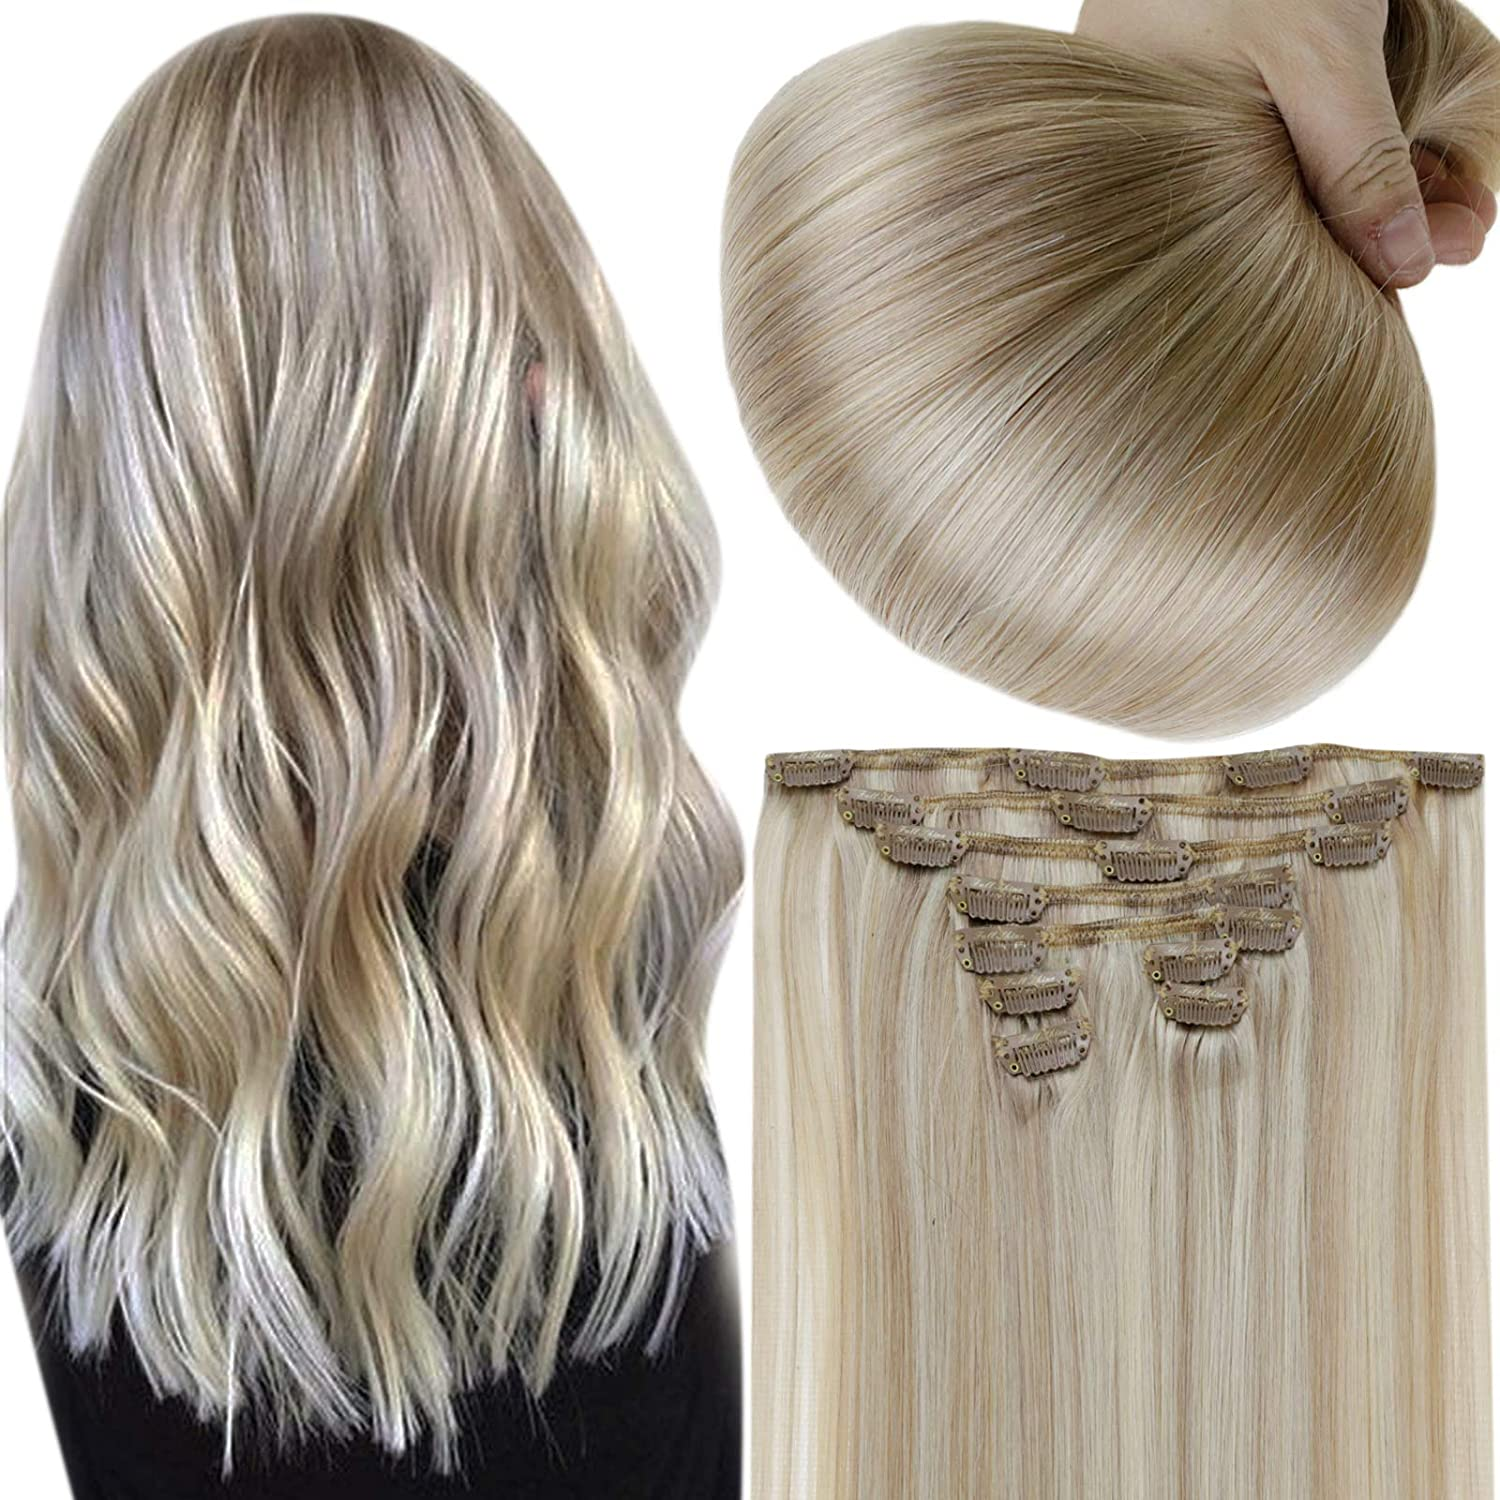 Full Shine Clip In Extensions Natural Hair Clip Ins 18 Inch Ash Blonde Highlighted Yellow Blonde 18 Highlight With 613 Double Weft Clip In Extensions Remy Hair Clip Extensions 100 Gram 7 Pcs Per Set